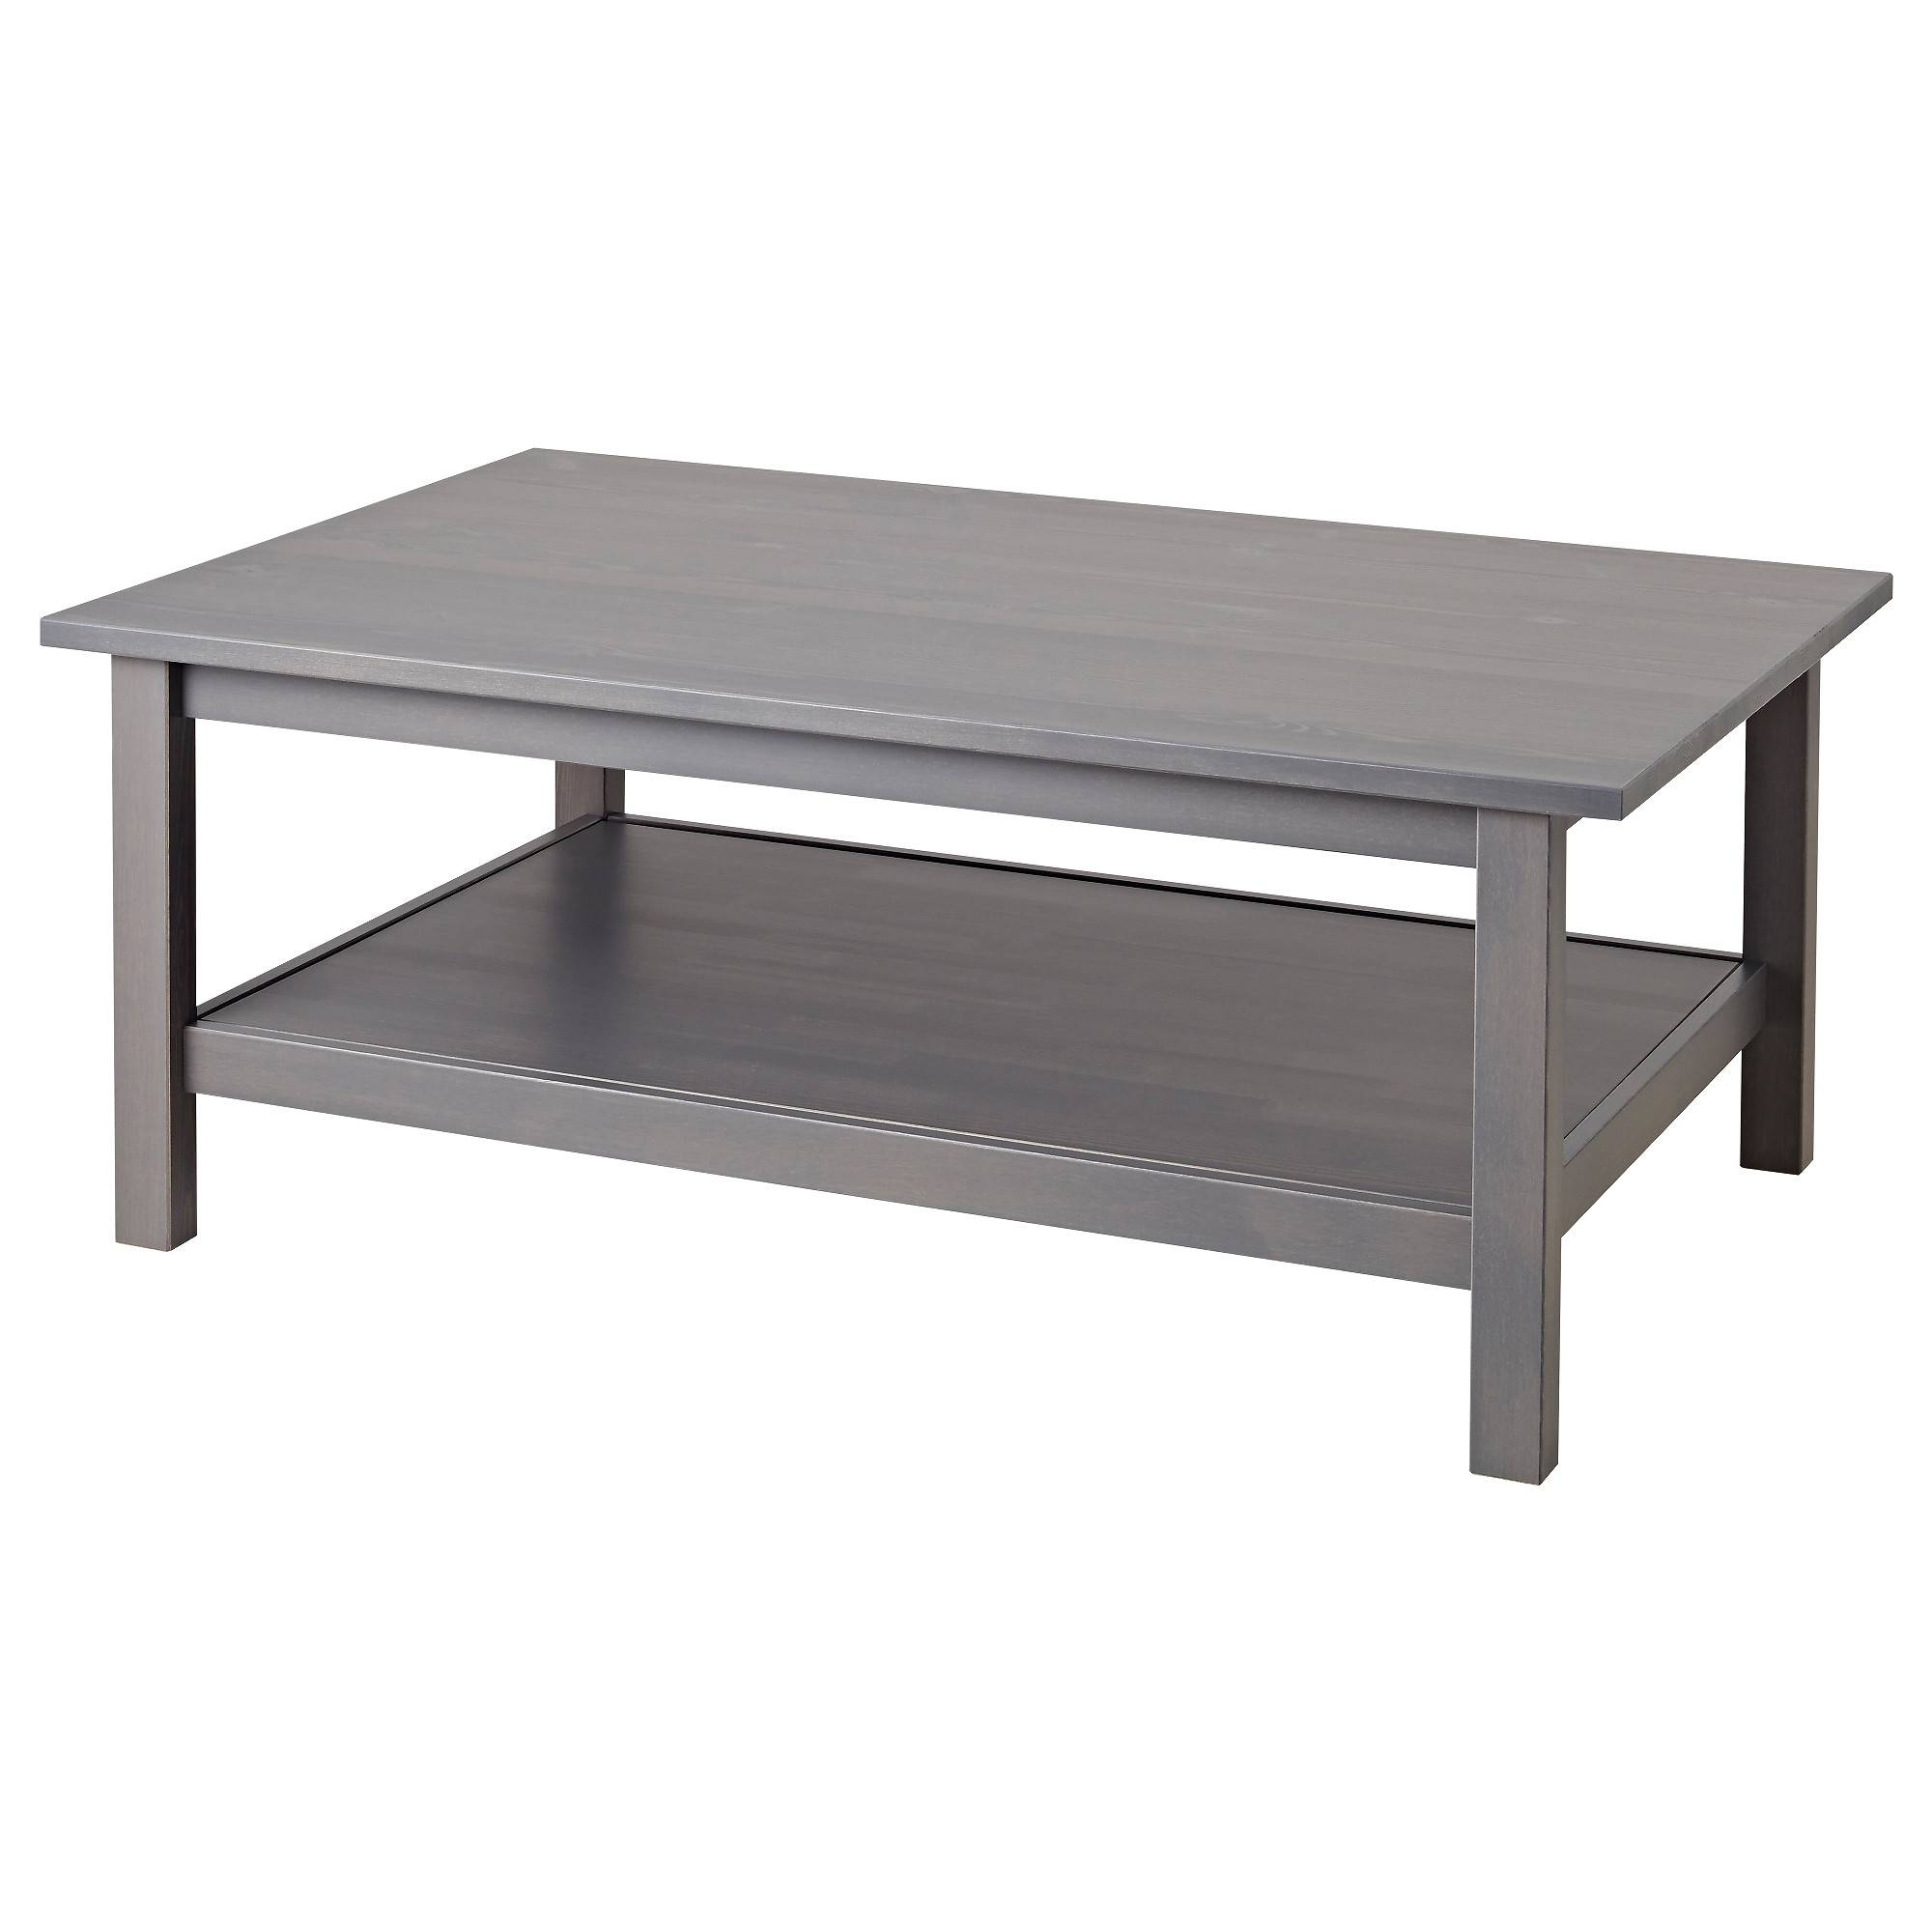 Hemnes Coffee Table - Black-Brown - Ikea with regard to Dark Coffee Tables (Image 25 of 30)